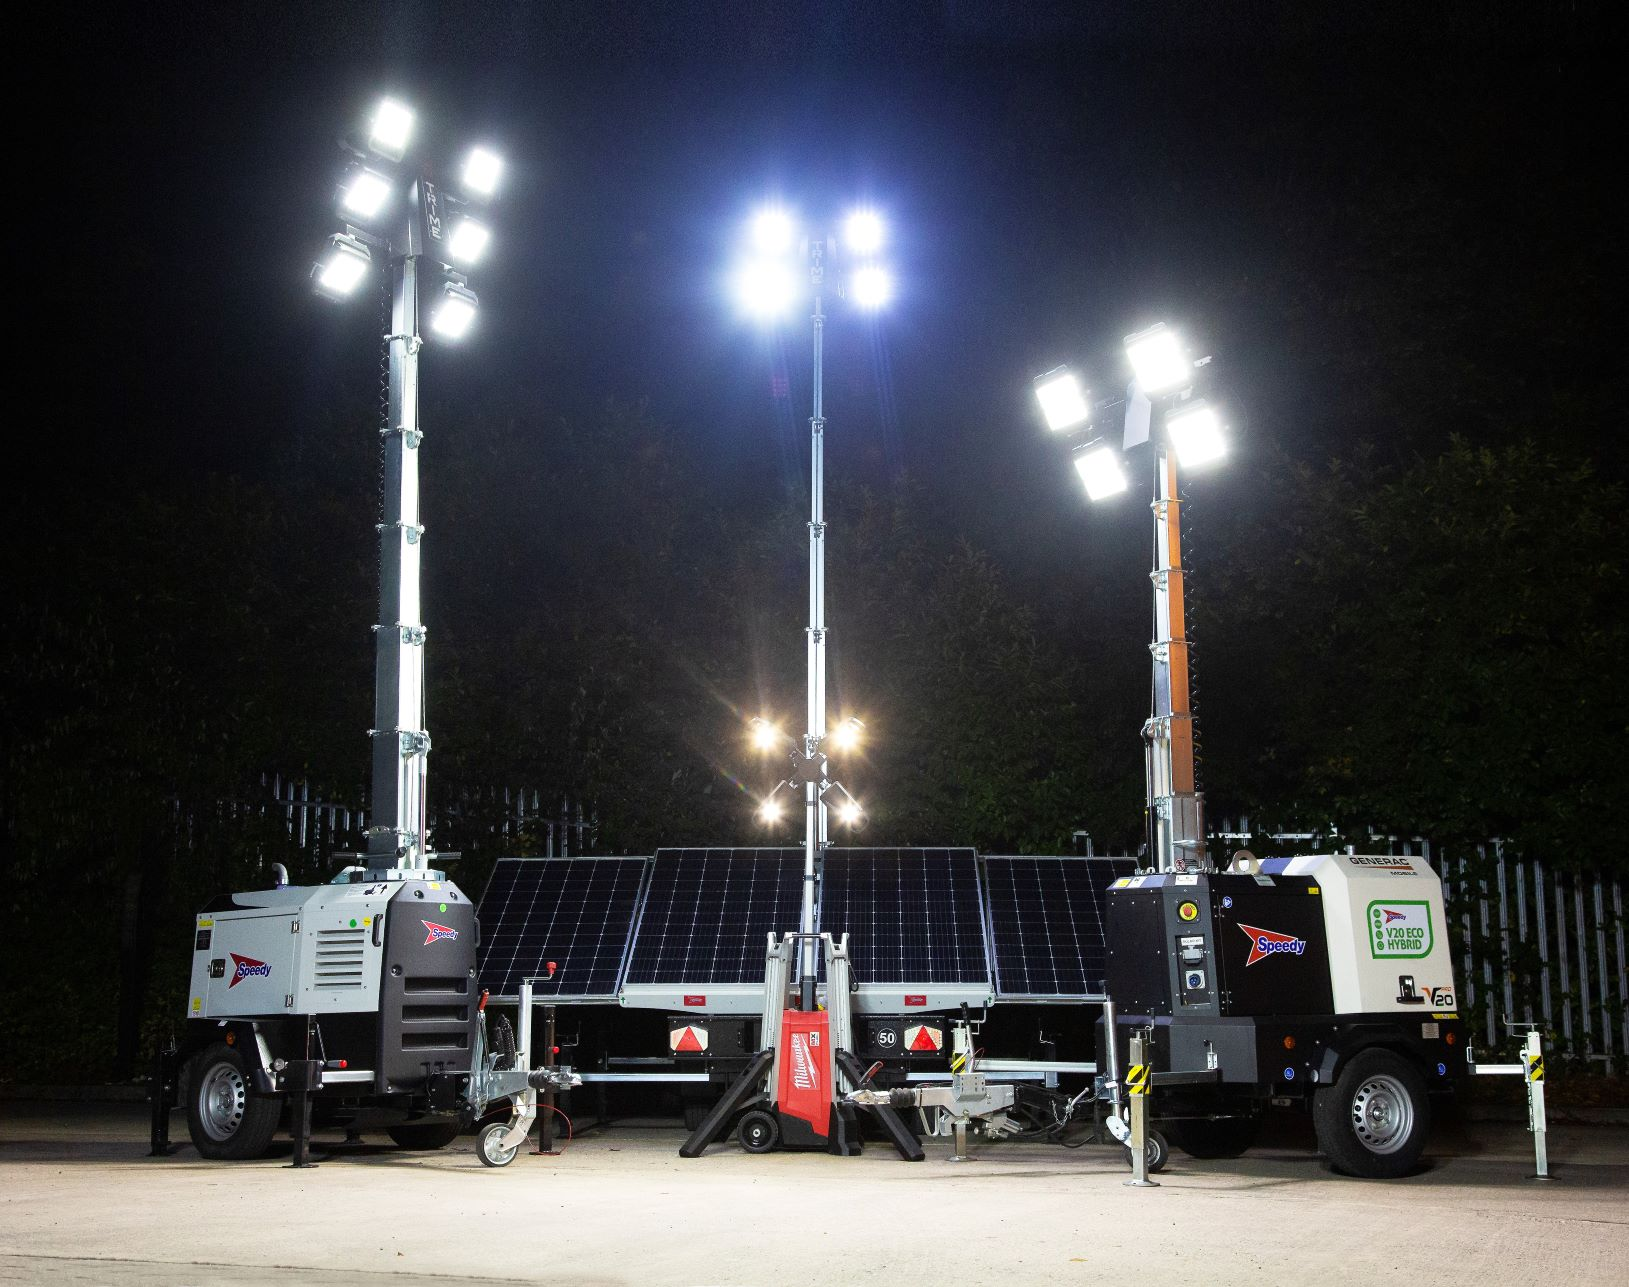 SPEEDY BRINGS INDUSTRY-FIRST ECO HYBRID LIGHTING TOWER TO MARKET